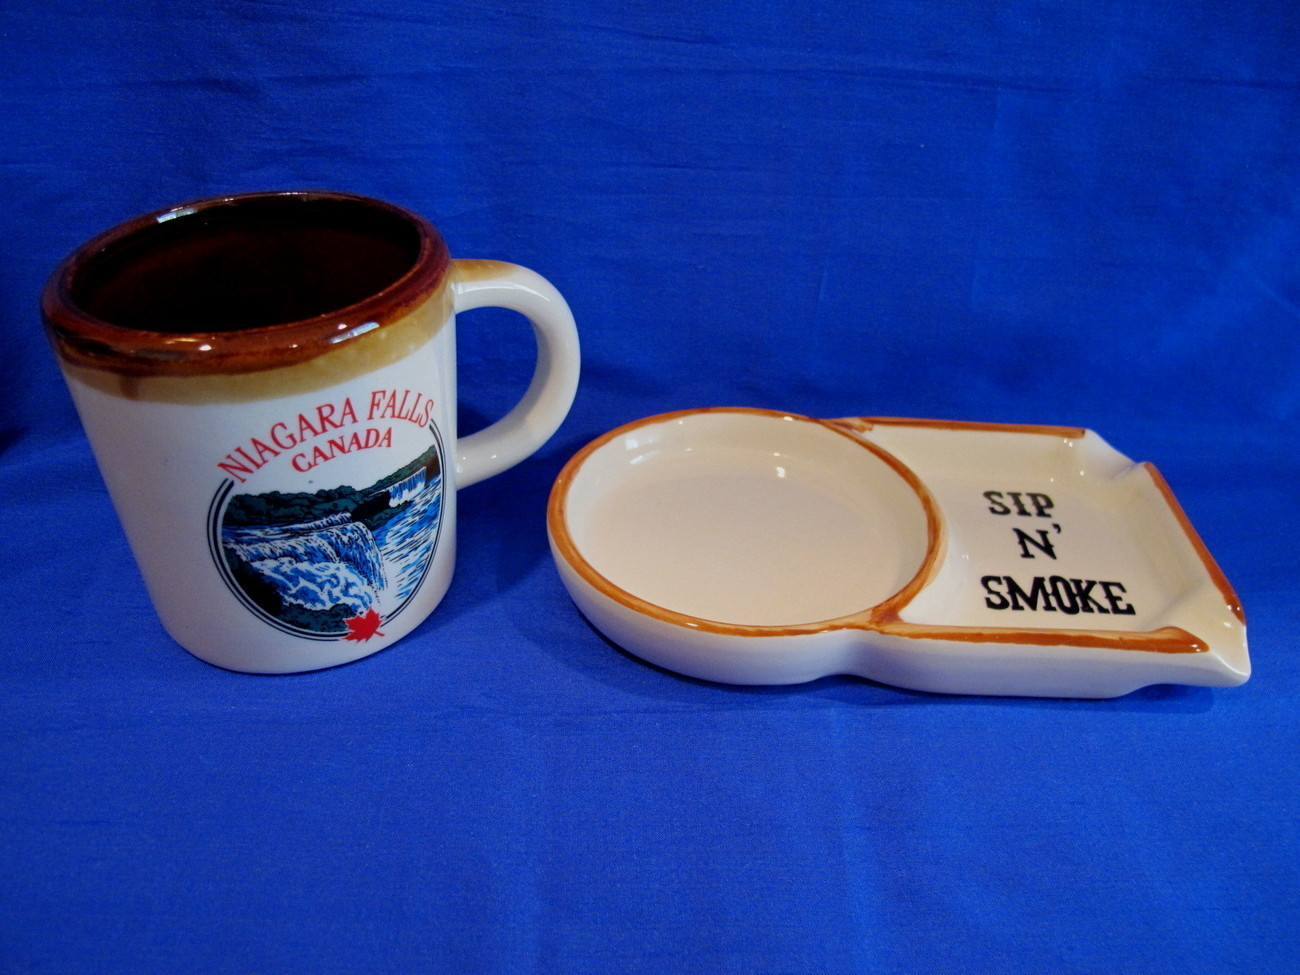 Niagara Falls Sip N Smoke Ashtray and Coffee Mug Cup Vintage Souvenir Collector